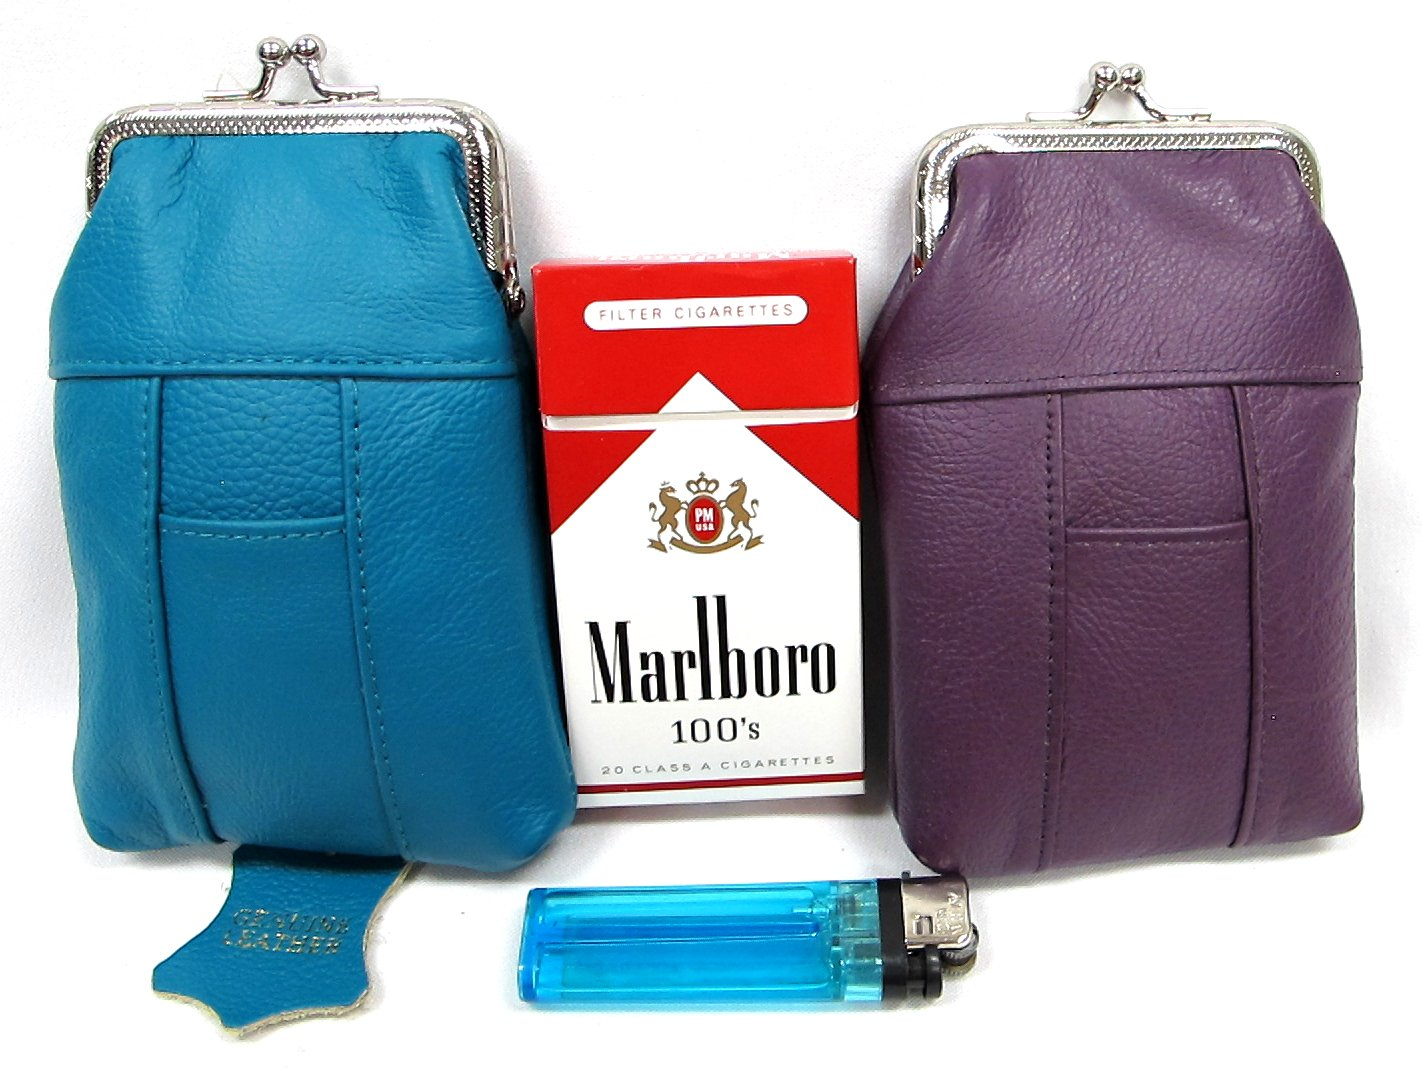 2pc SET Genuine Leather Cigarette Case Pouch PURPLE + BLUE-GREEN Fit 100s, King Regular Pack